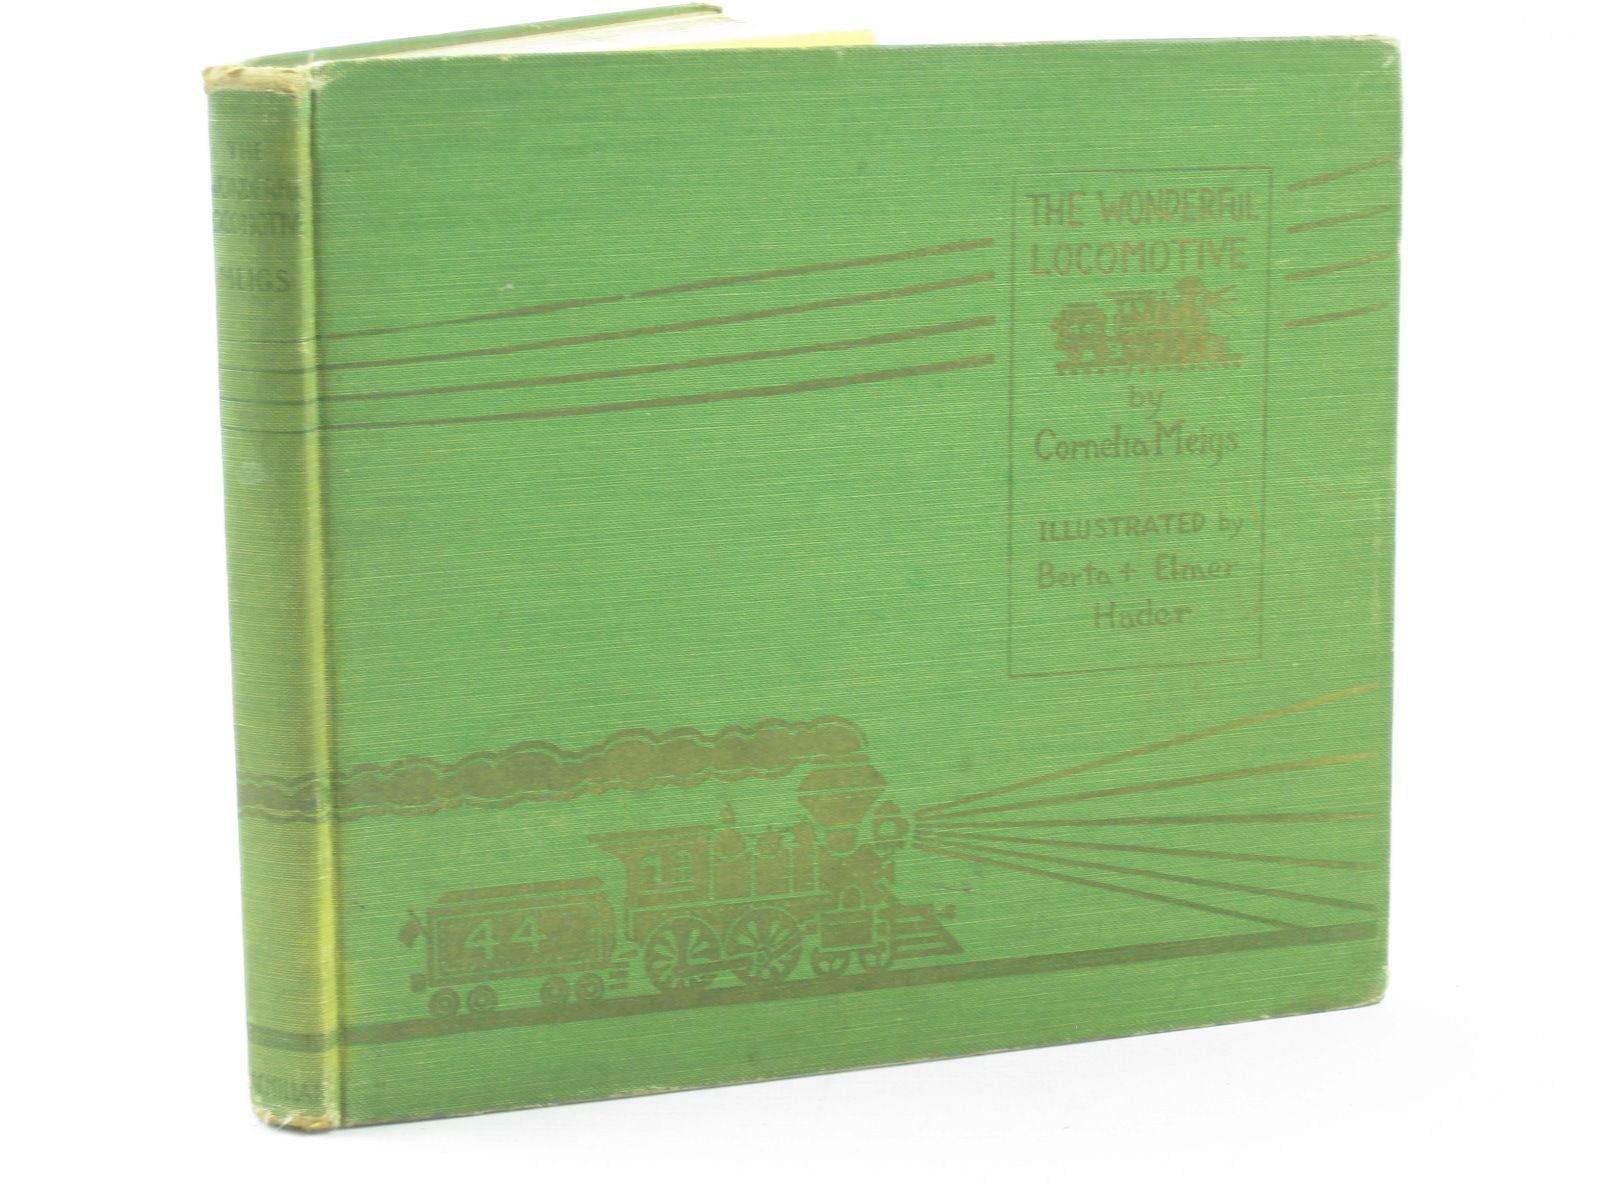 Photo of THE WONDERFUL LOCOMOTIVE written by Meigs, Cornelia illustrated by Hader, Berta<br />Hader, Elmer published by MacMillan (STOCK CODE: 1311680)  for sale by Stella & Rose's Books